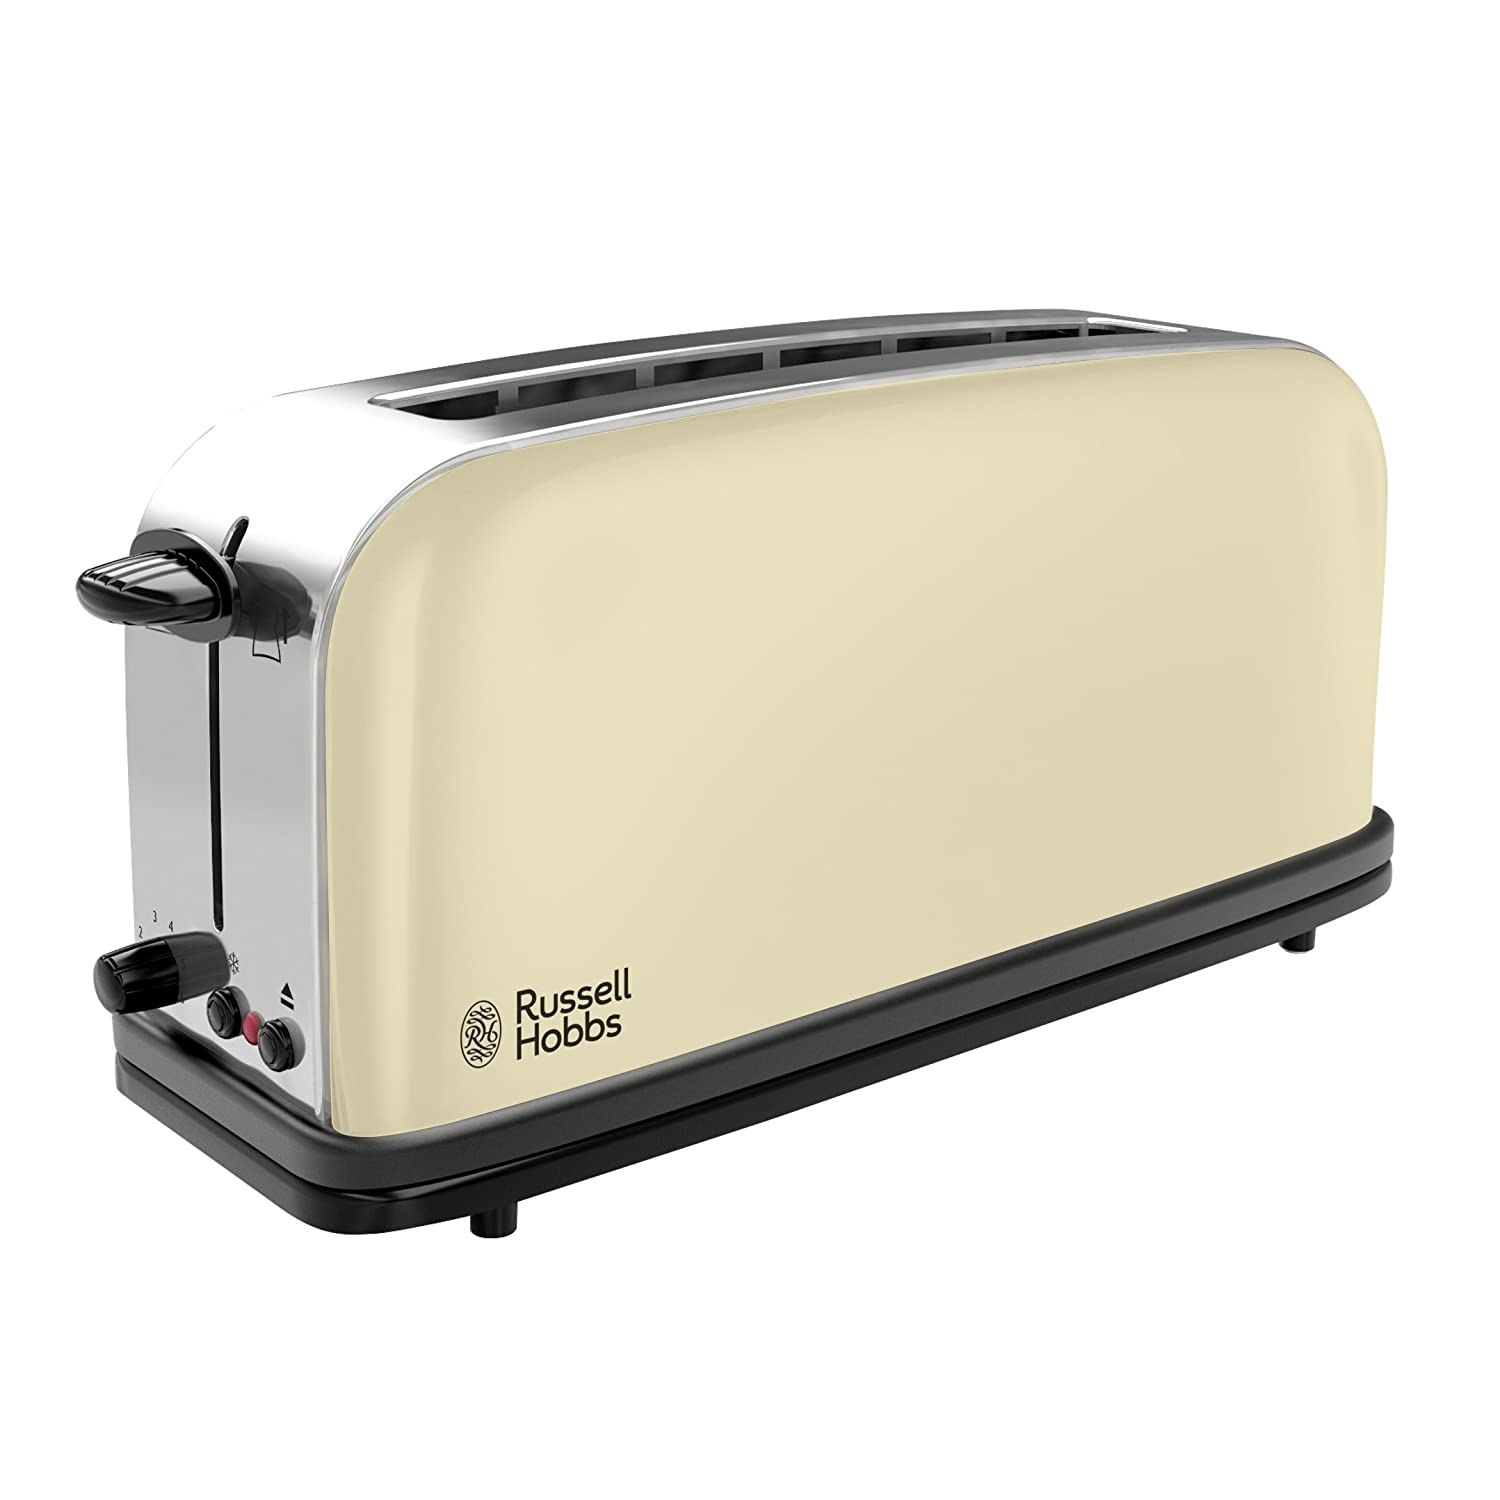 house four stainless garden slice toaster dualit best review extras steel alessi independent indybest under the toasters